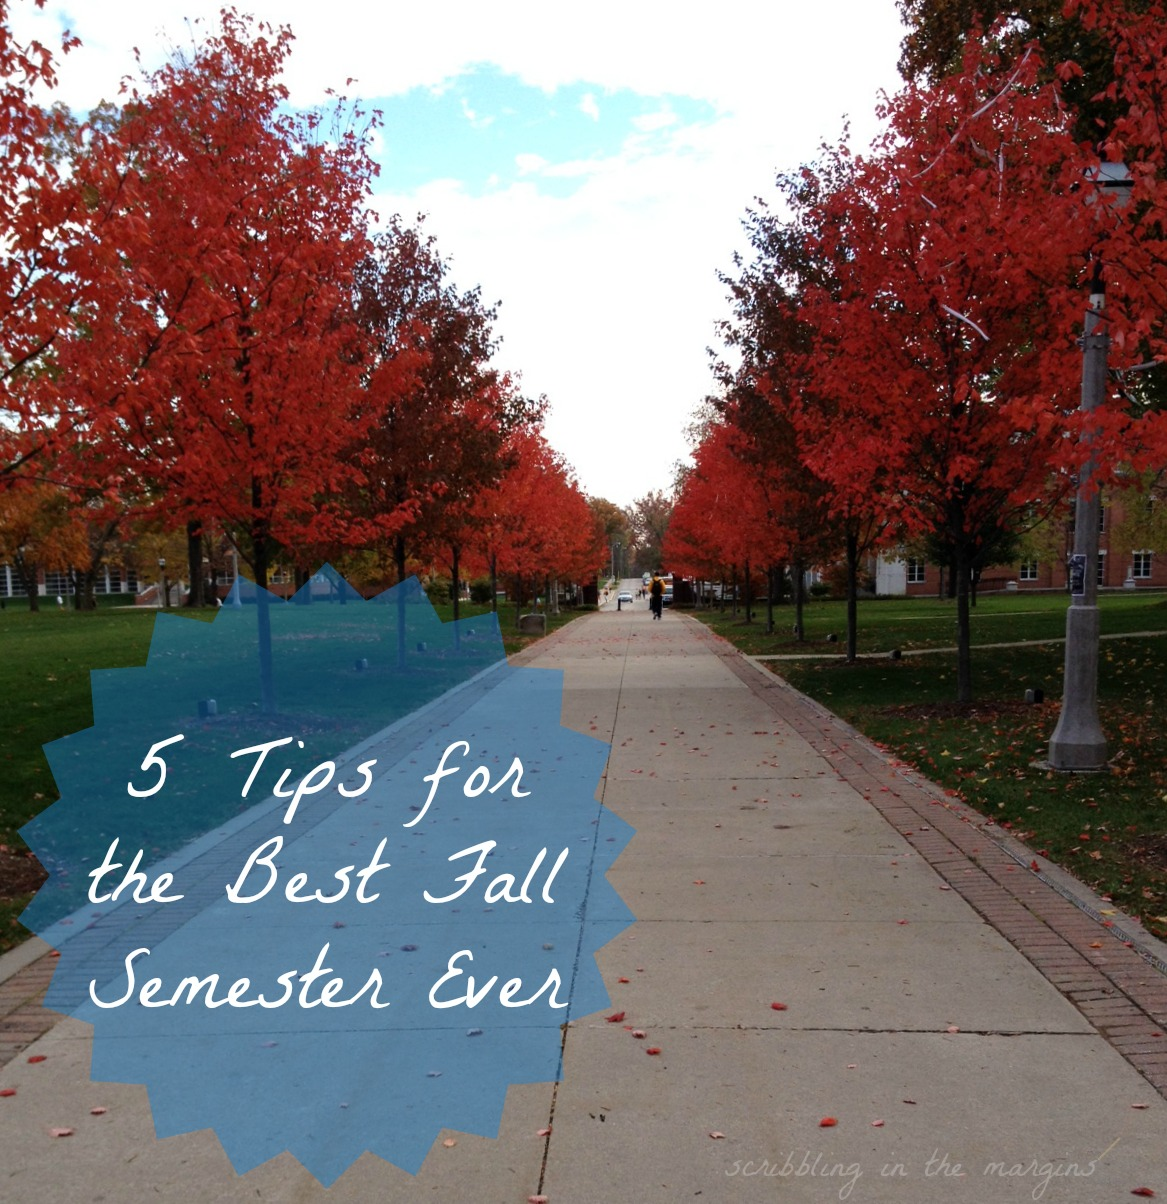 5 Tips for the Best Fall Semester